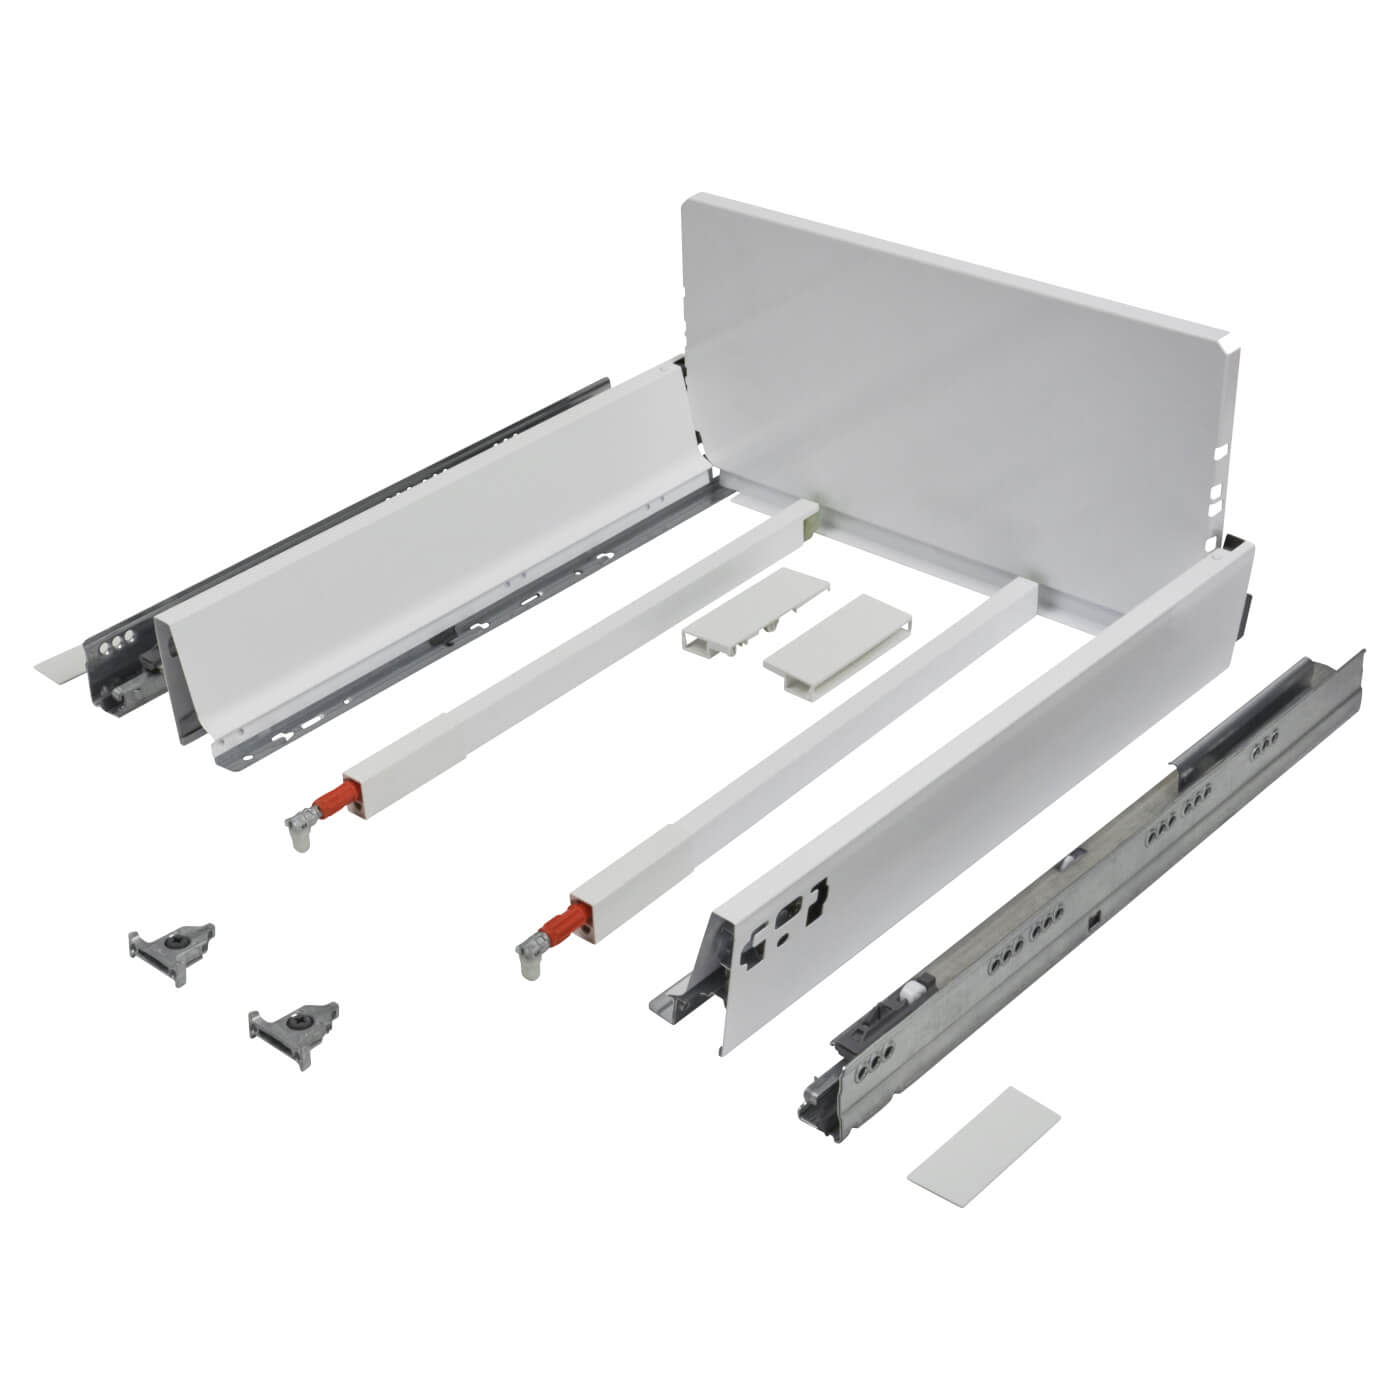 Blum TANDEMBOX ANTARO Pan Drawer - BLUMOTION Soft Close - (H) 203mm x (D) 350mm x (W) 300mm - White)